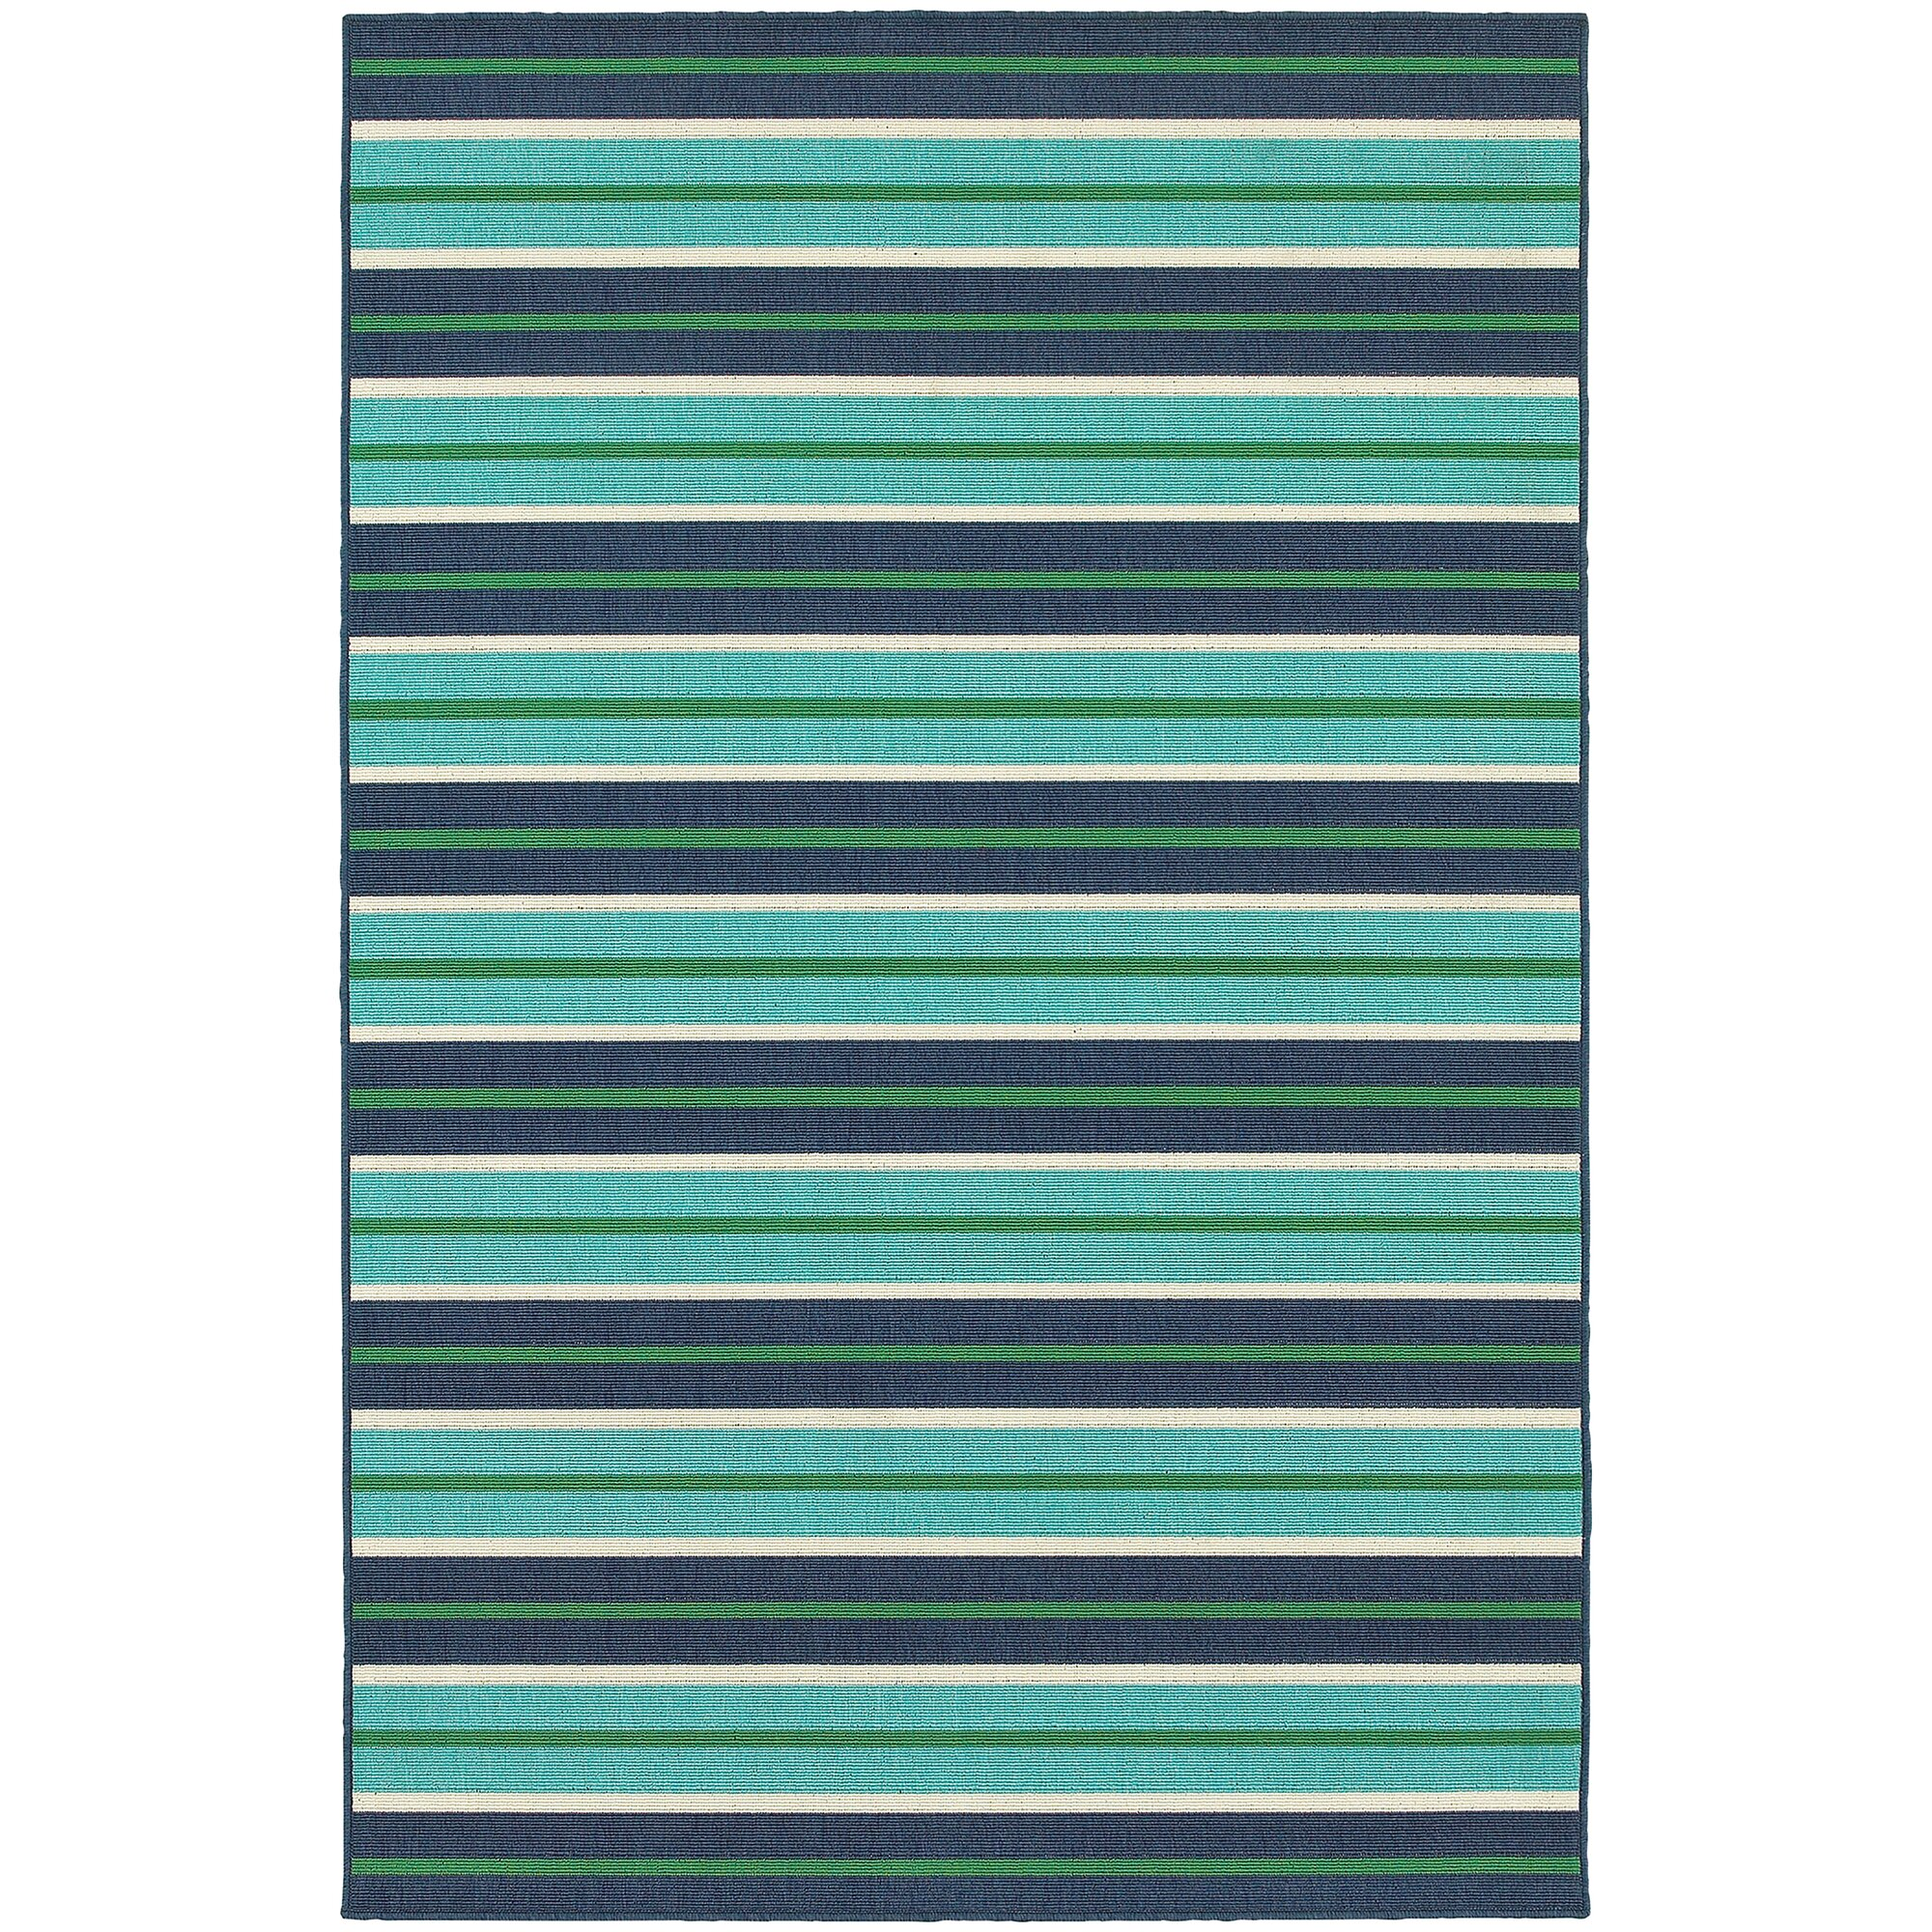 Cortlandt Blue Green Indoor Outdoor Area Rug & Reviews